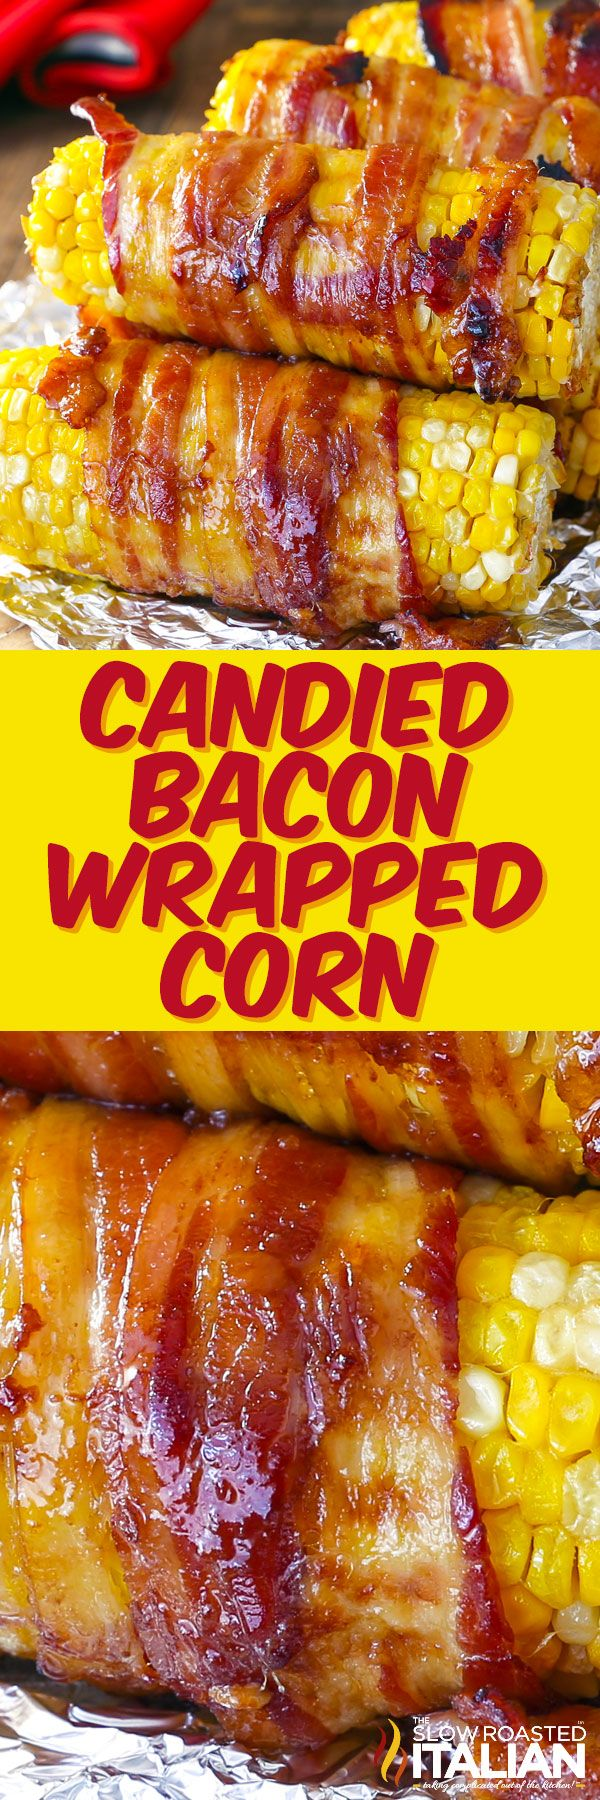 The best corn recipe you have ever tasted, Candied-Bacon Wrapped Corn is what dreams are made of! It all starts with tender sweet corn wrapped in crisp smoky bacon and topped with caramelized brown sugar.